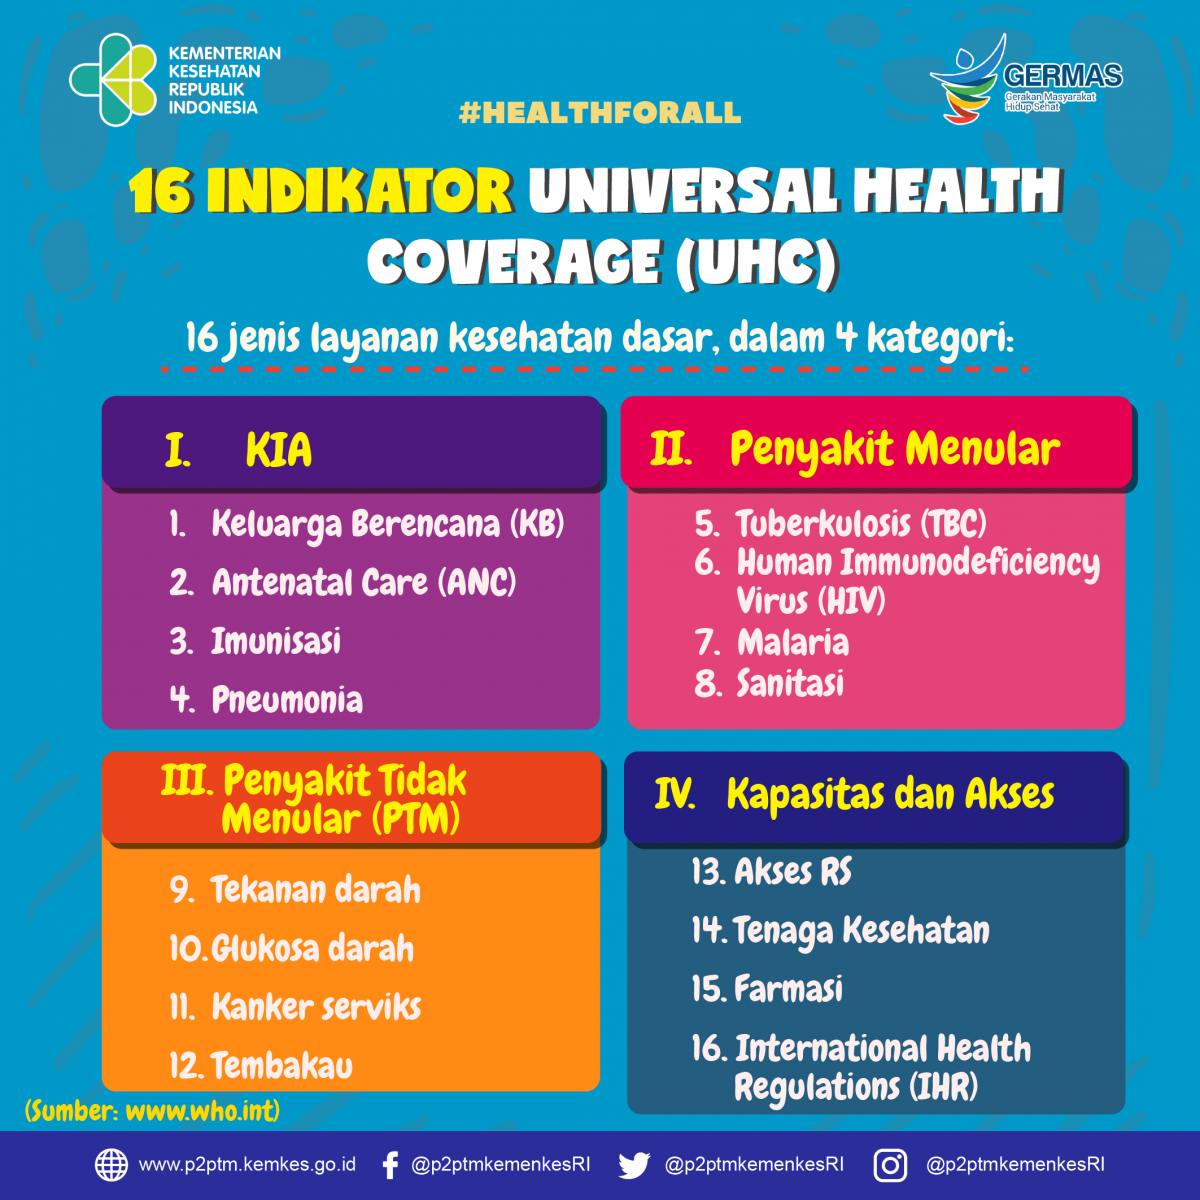 16 Indikator Universal Health Coverage (UHS)